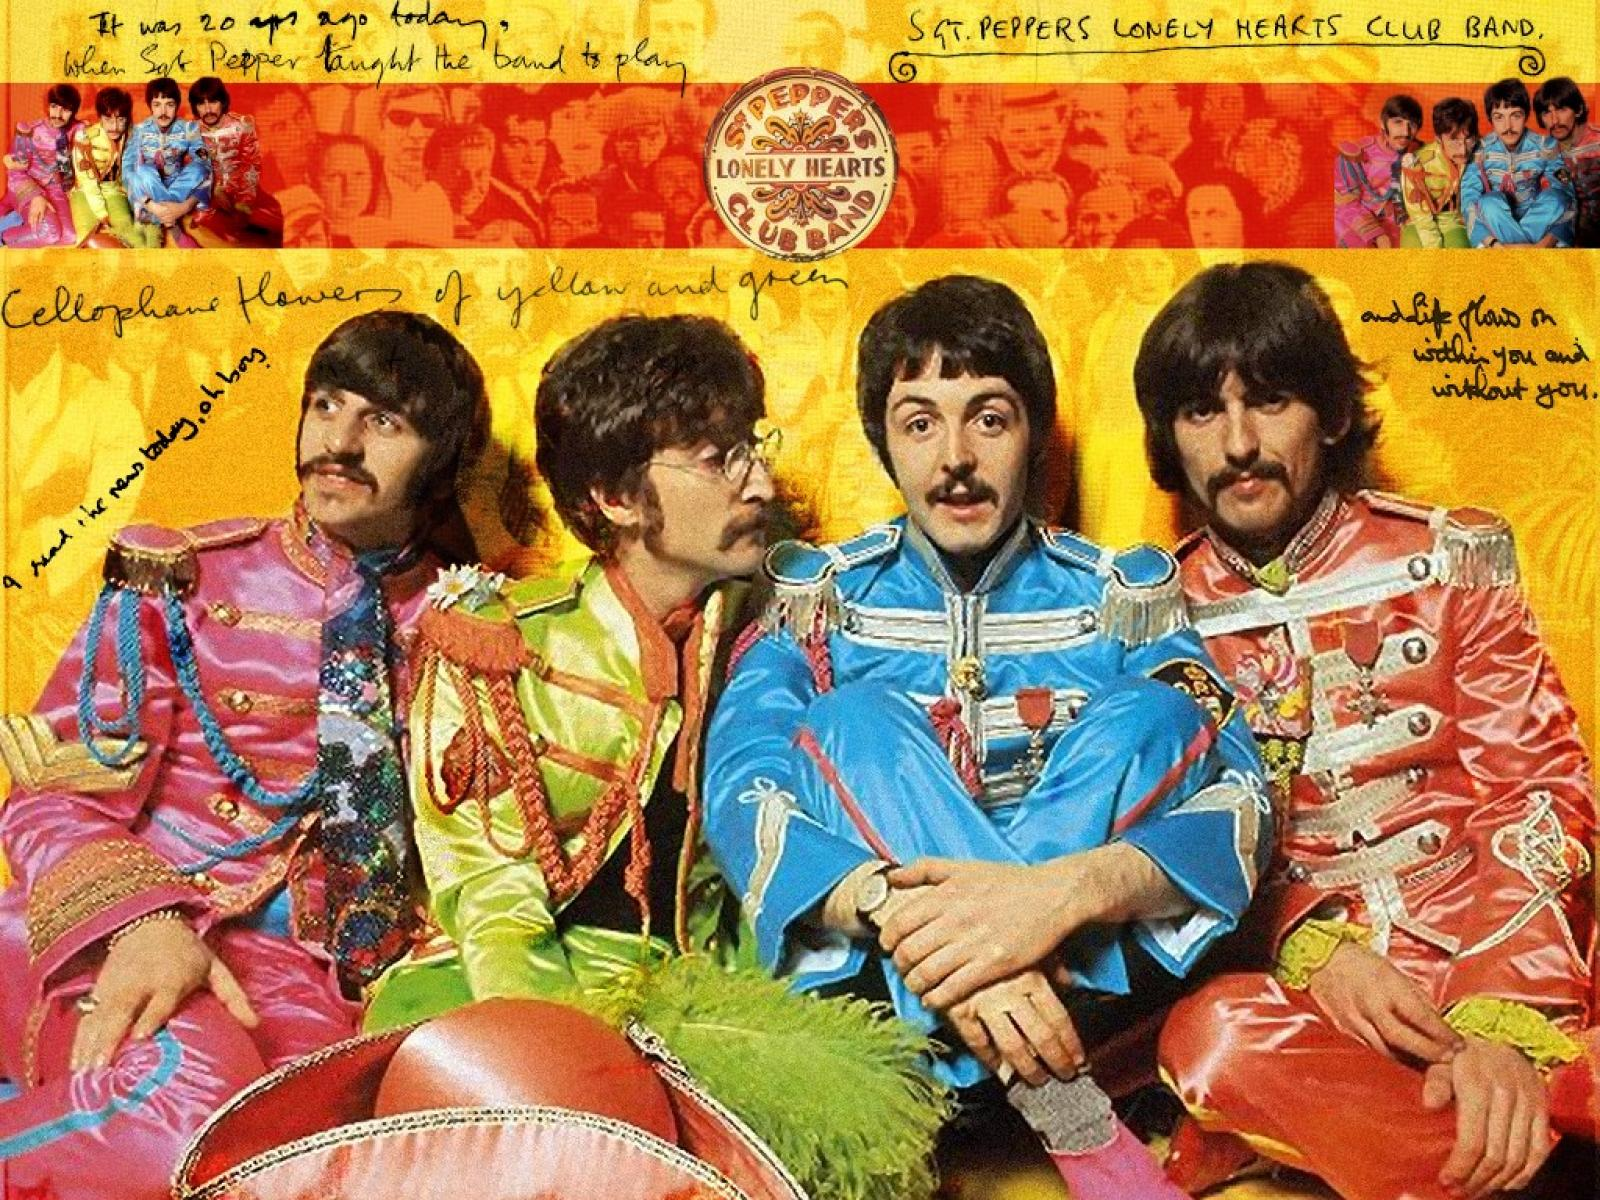 http://3.bp.blogspot.com/_pJa9Rq8u6xs/S8NptIfZwHI/AAAAAAAAAAo/EyPSdhkV-KA/s1600/Sgt.Peppers+Lonely+Hearts+Club+Band+Wallpaper.jpg